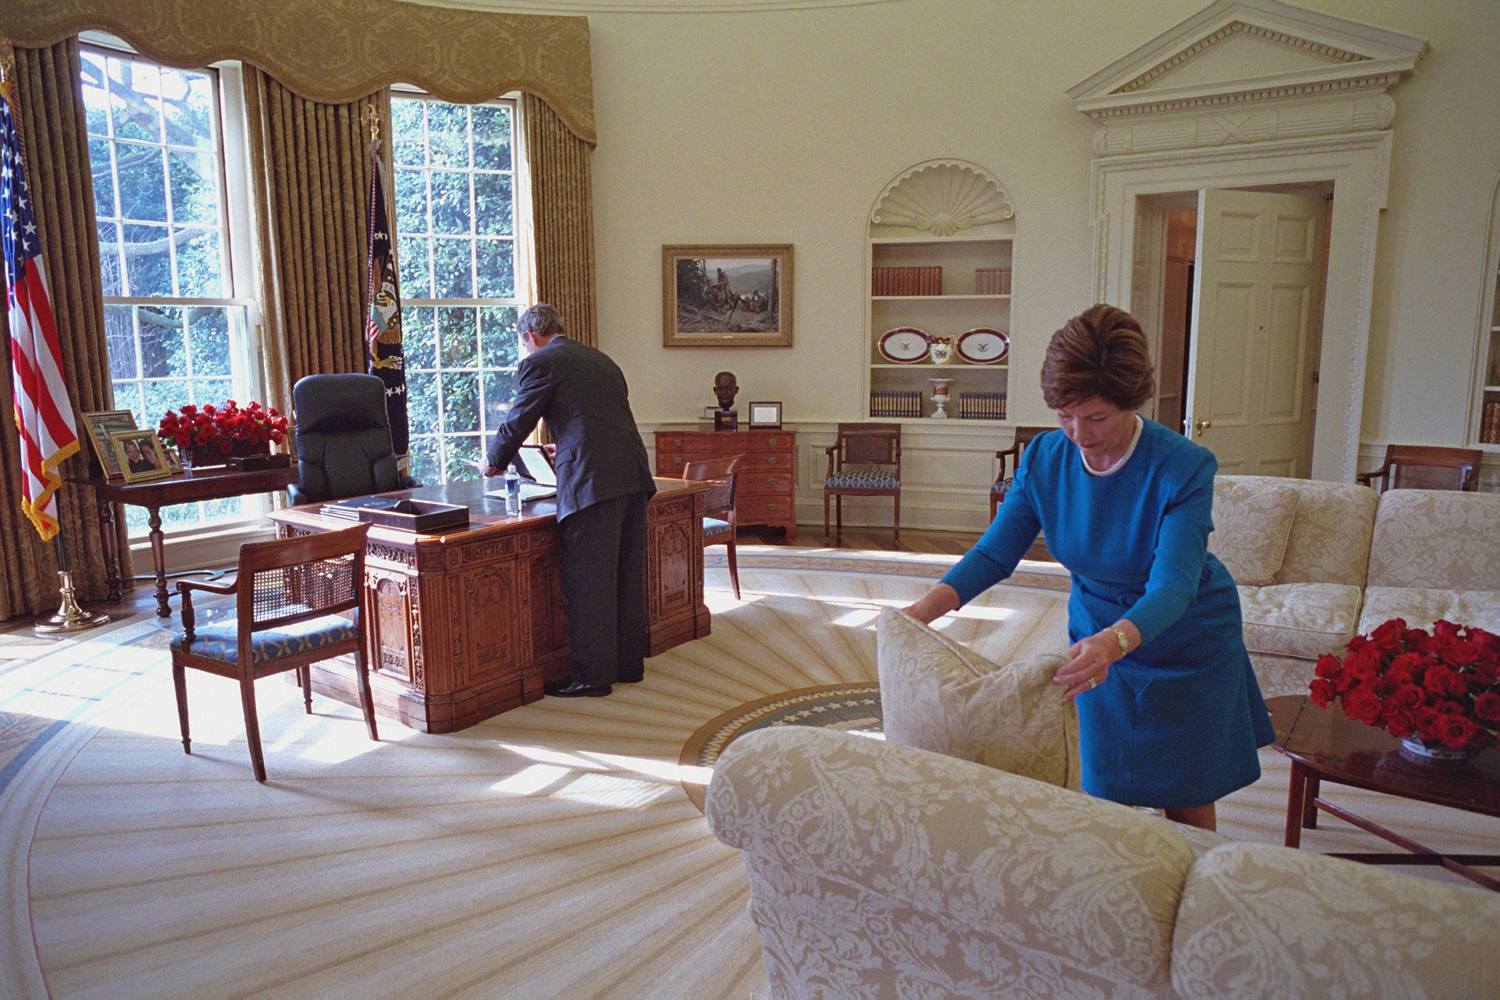 "Jan. 30, 2002. President and Mrs. Bush make some last-minute adjustments as they prepare to welcome decorators and donors to the Oval Office.""The President and Mrs. Bush were truly a team and greatly respected each other,  Draper says.  They were also playful, teasing each other and making each other laugh."""